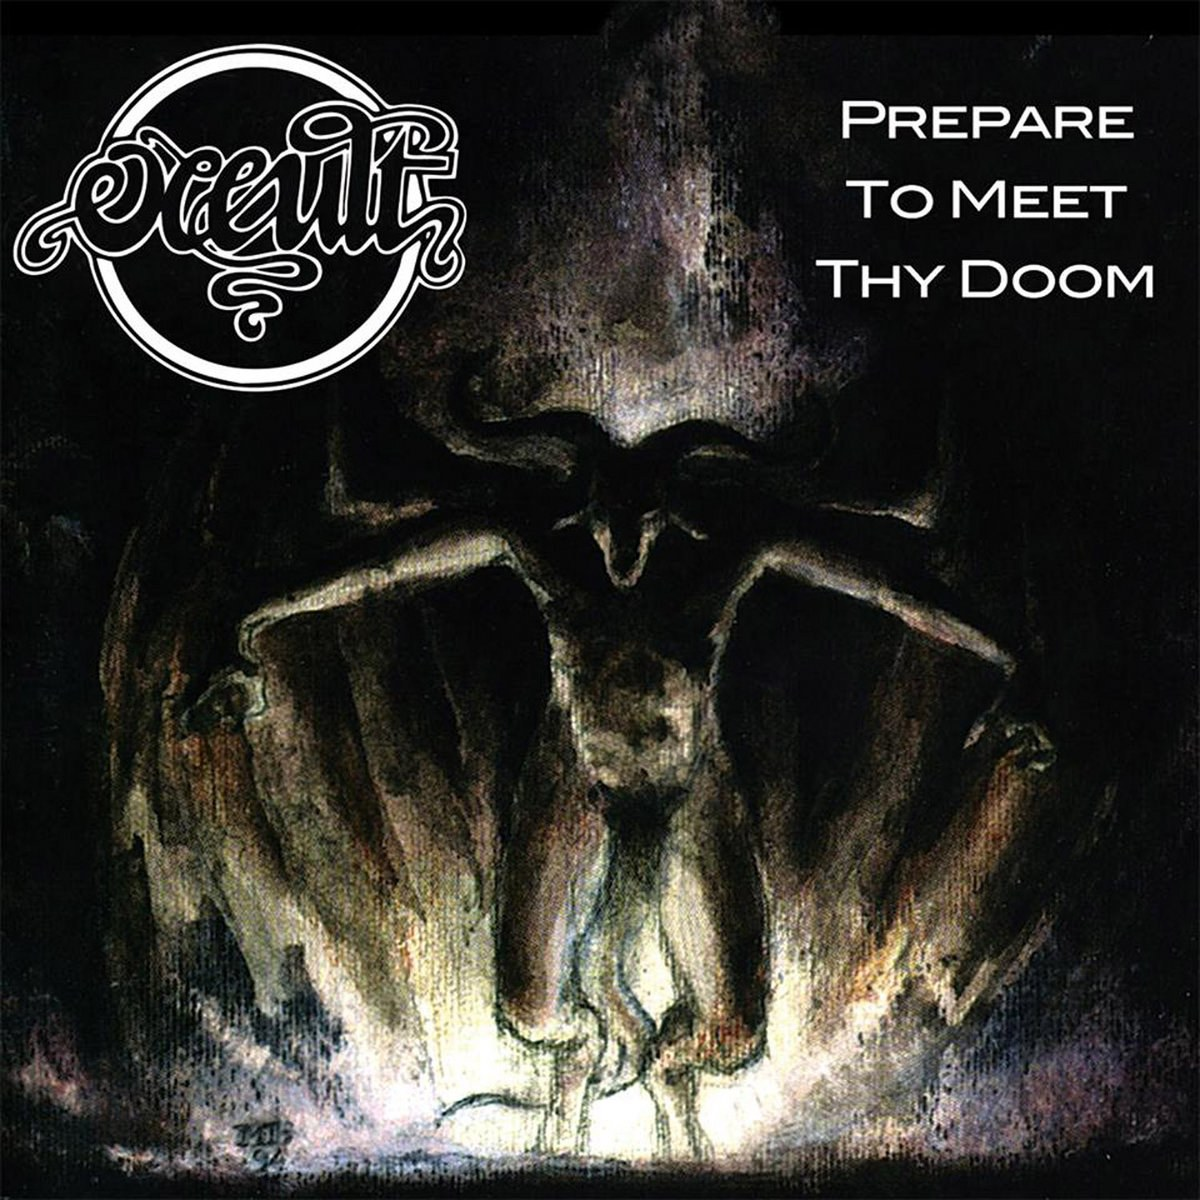 Review for Occult (NLD) - Prepare to Meet Thy Doom